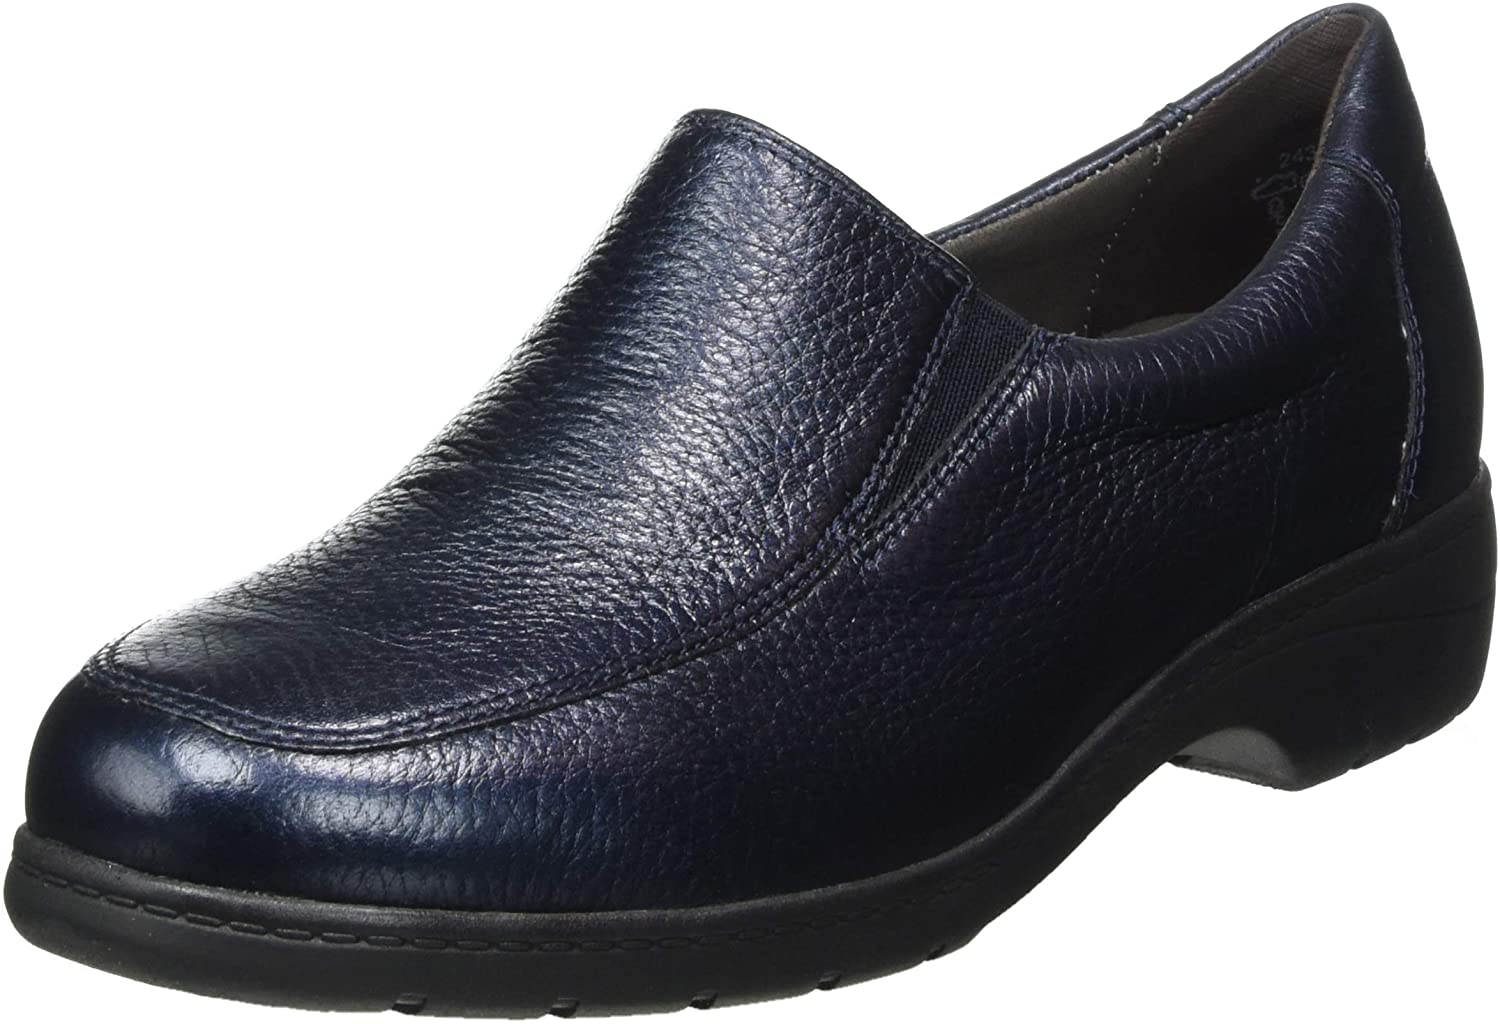 Caprice Women's Loafer